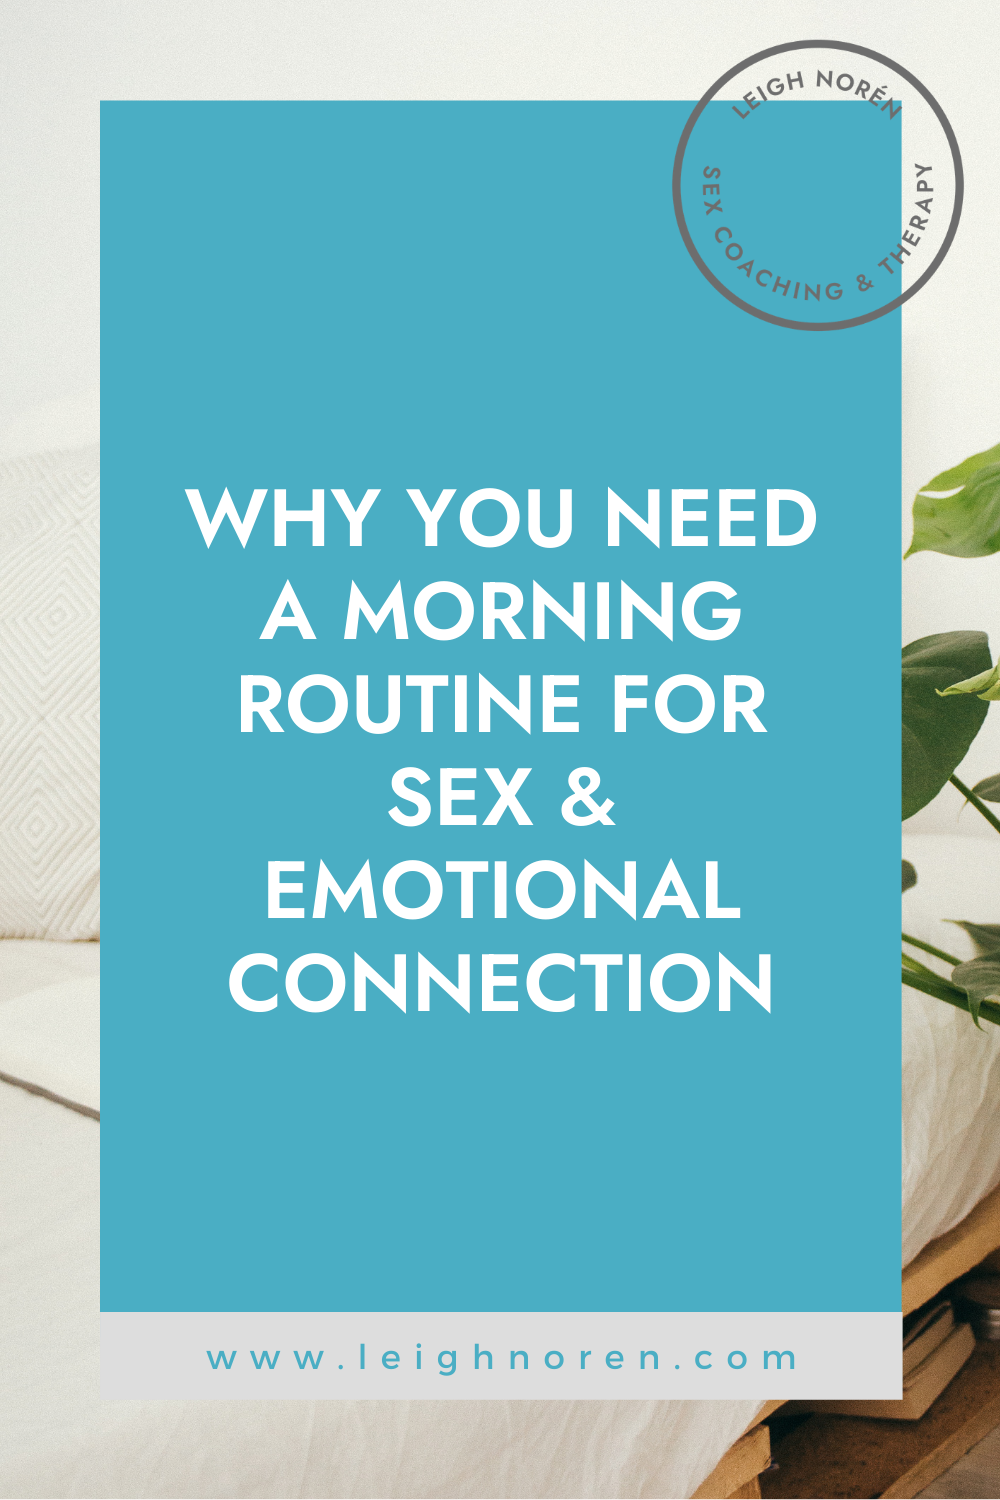 Why You Need a Morning Routine for Sex and Emotional Connection